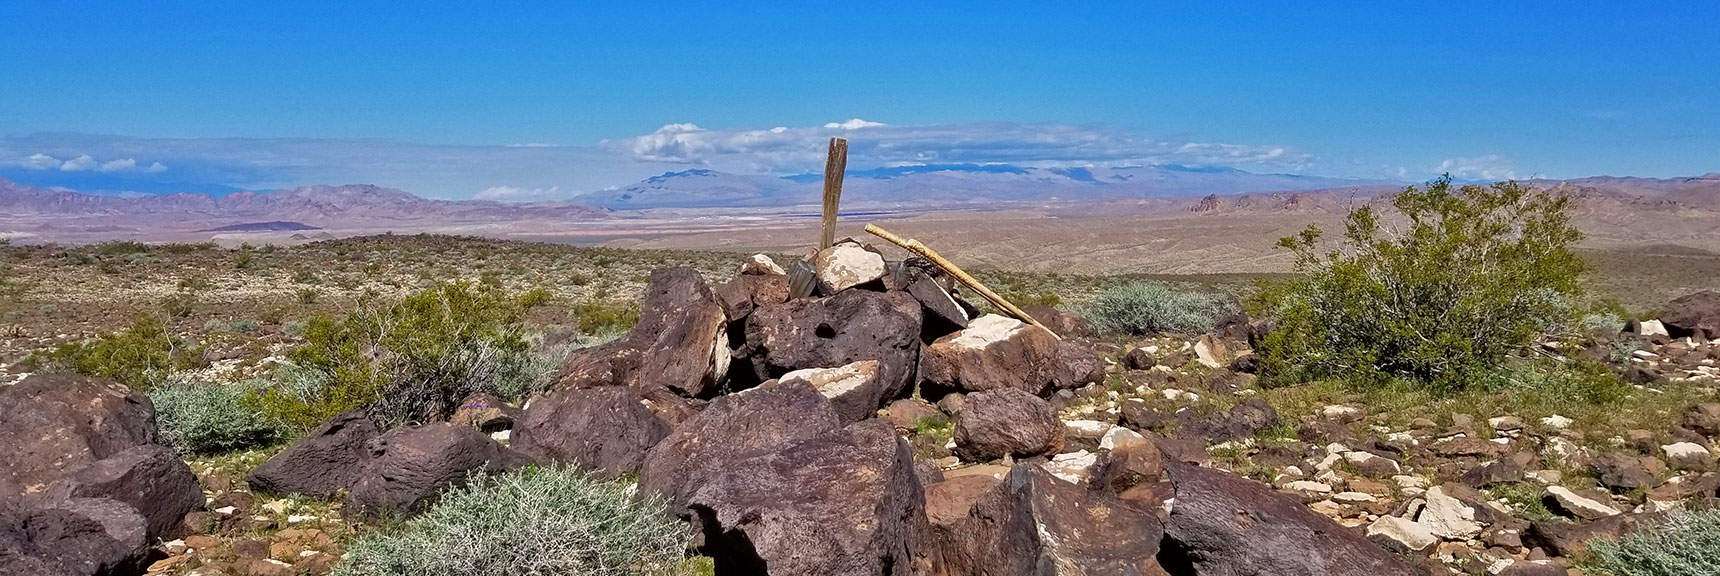 View Toward Gass Peak from Black Mesa in Lake Mead National Recreation Area, Nevada